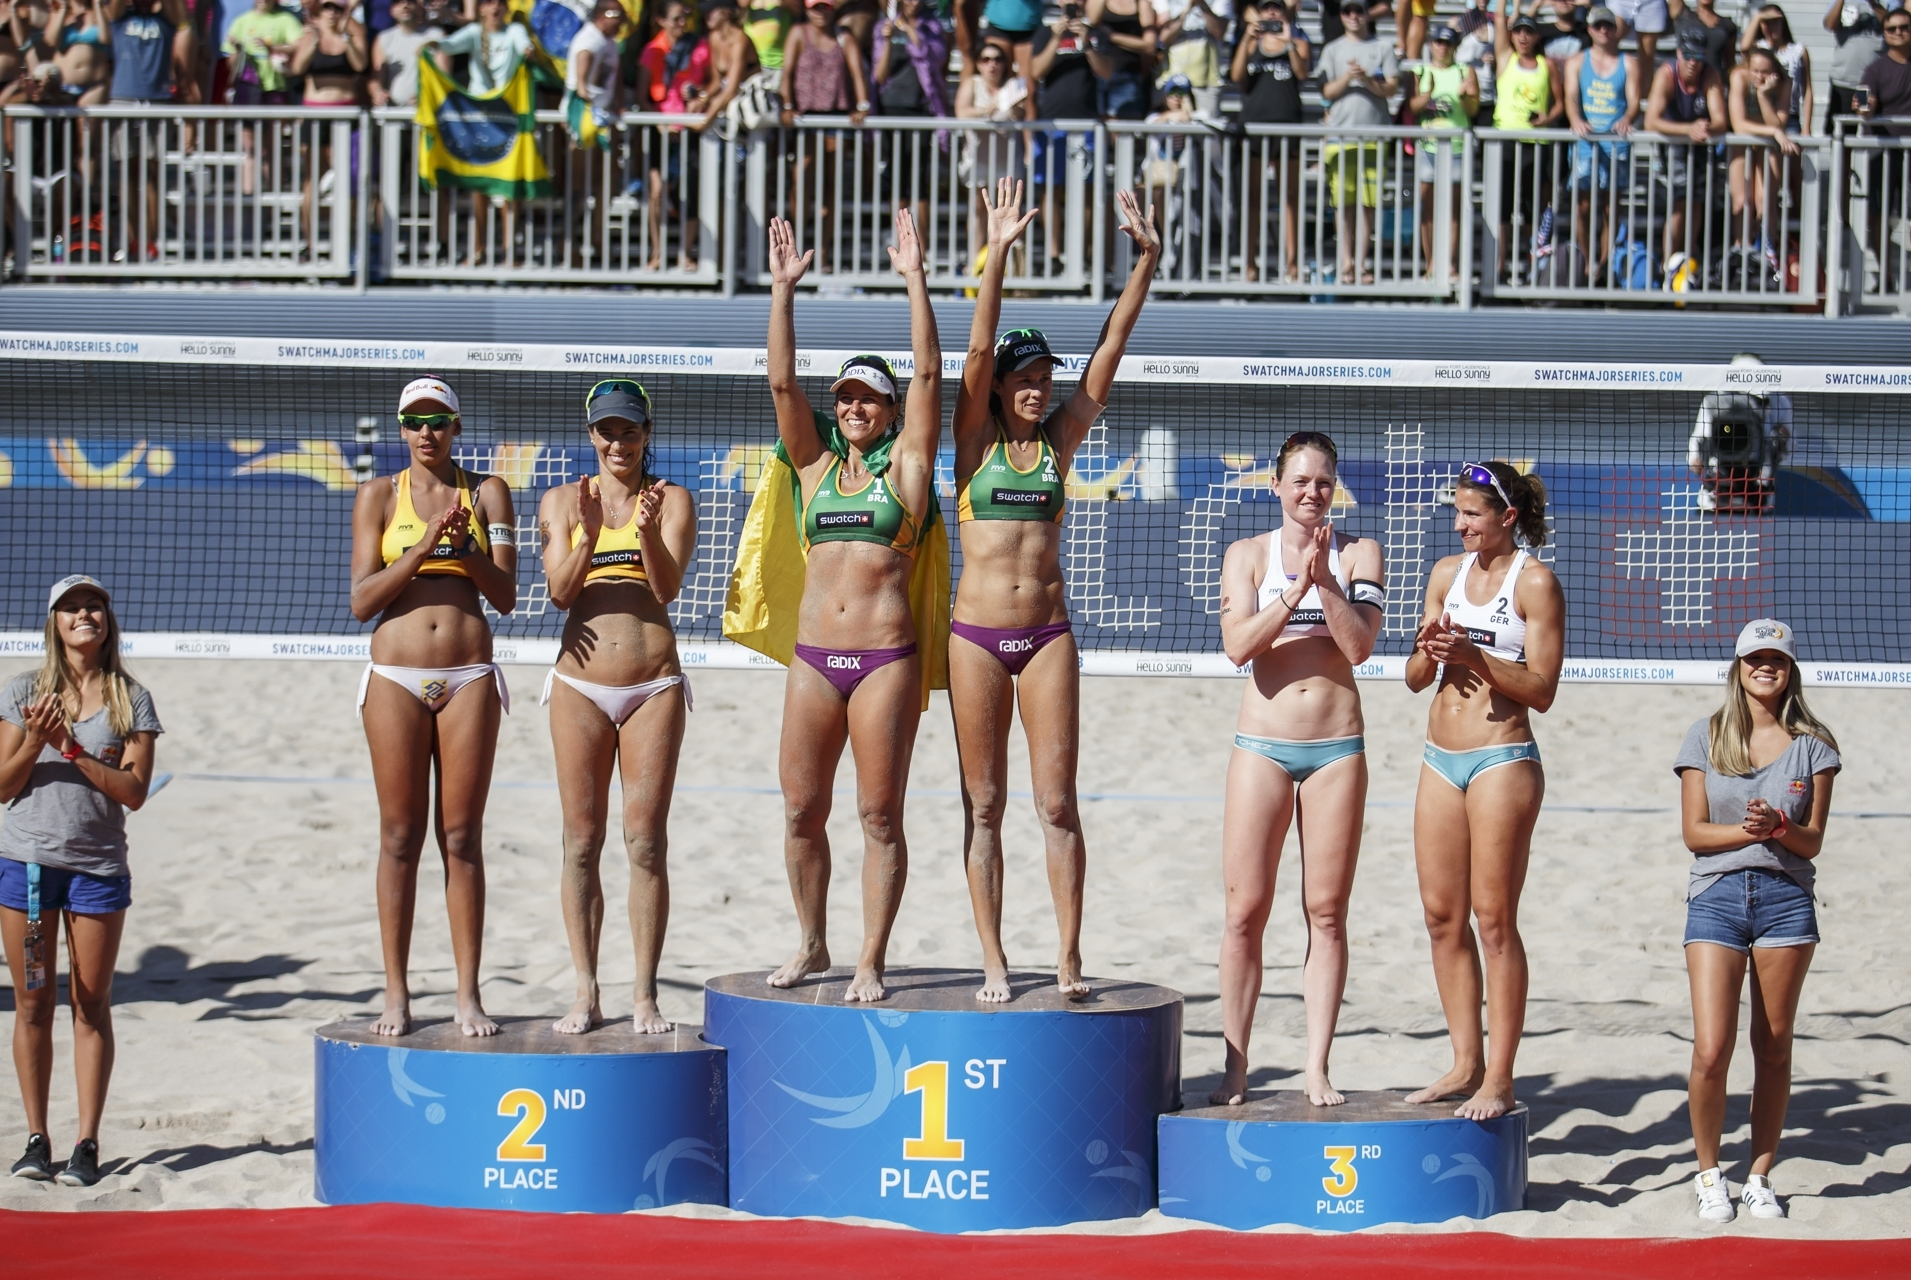 All three women's medalists from the Fort Lauderdale Major are in action in Rio this week